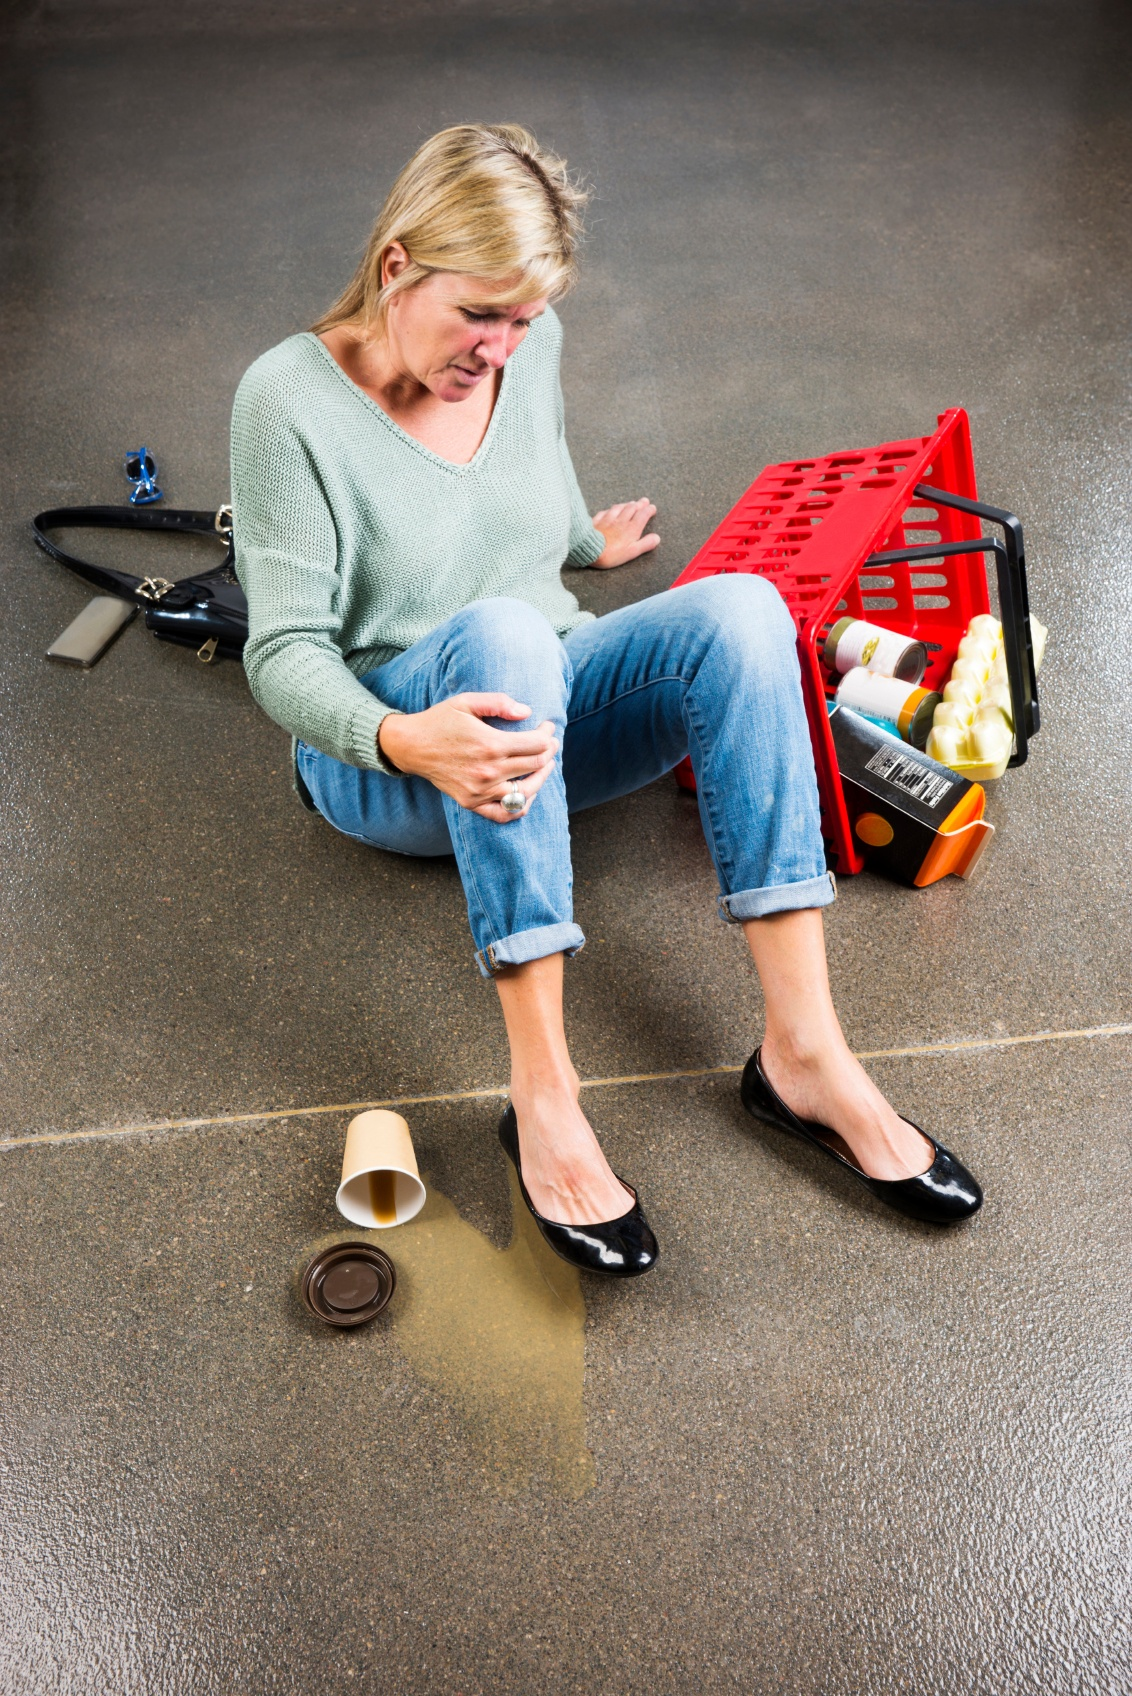 Reasons to Hire a Slip and Fall Accident Attorney